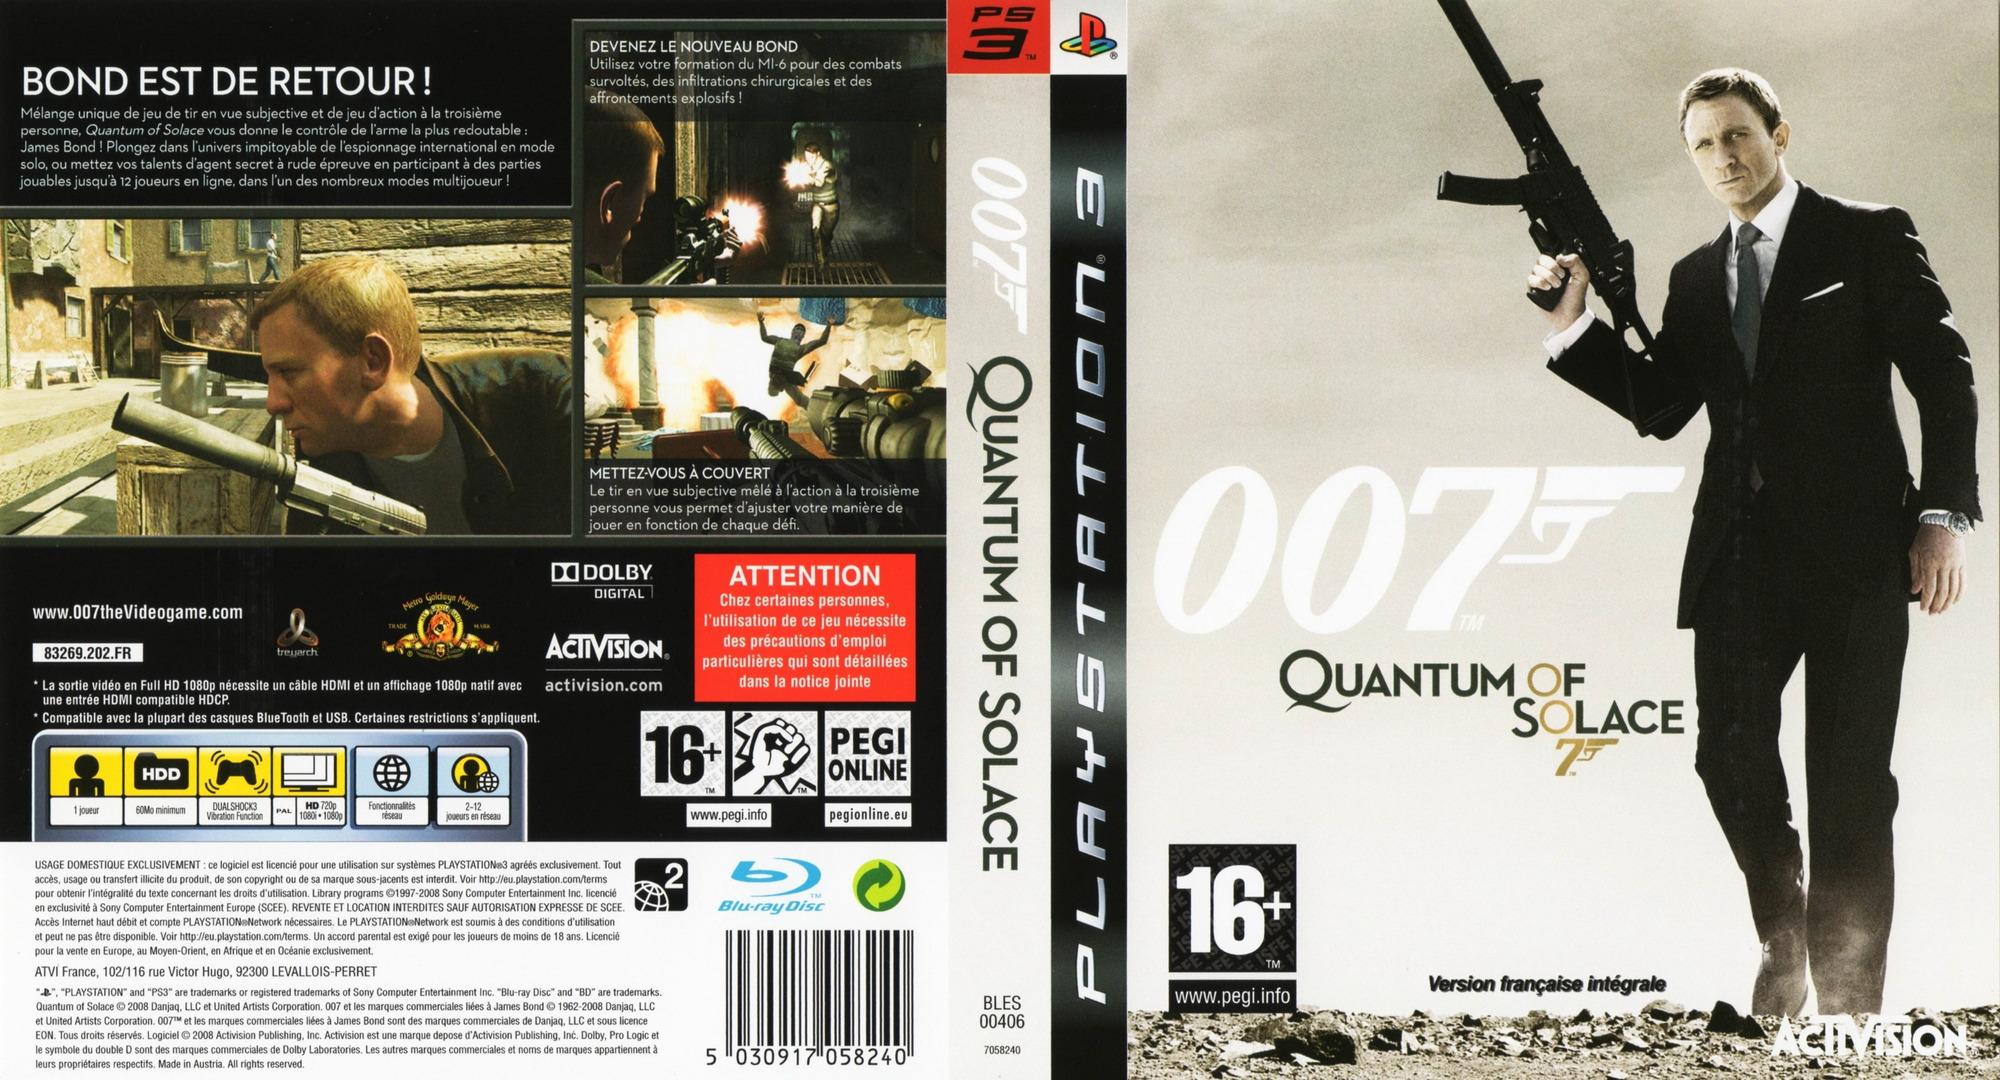 007:Quantum of Solace Array coverfullHQ (BLES00406)